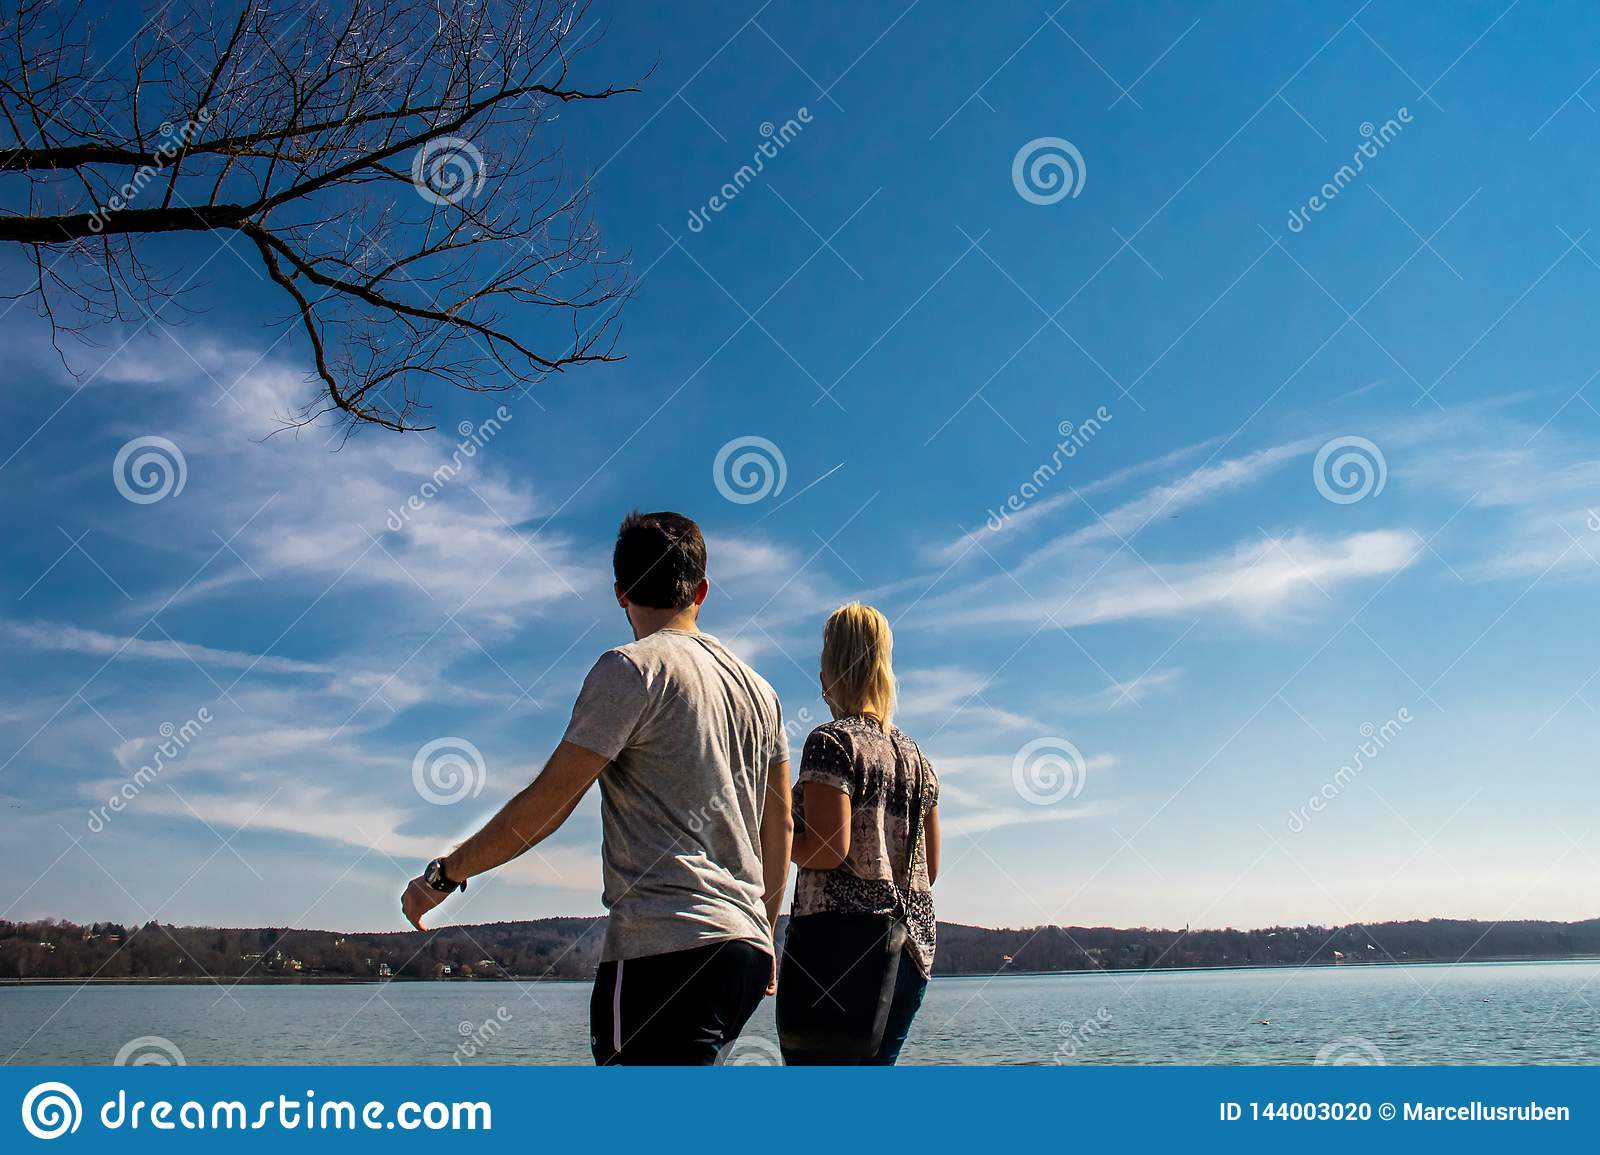 Couple looking at the beautiful lake scenery with clear blue sky background in Starnberg, Germany